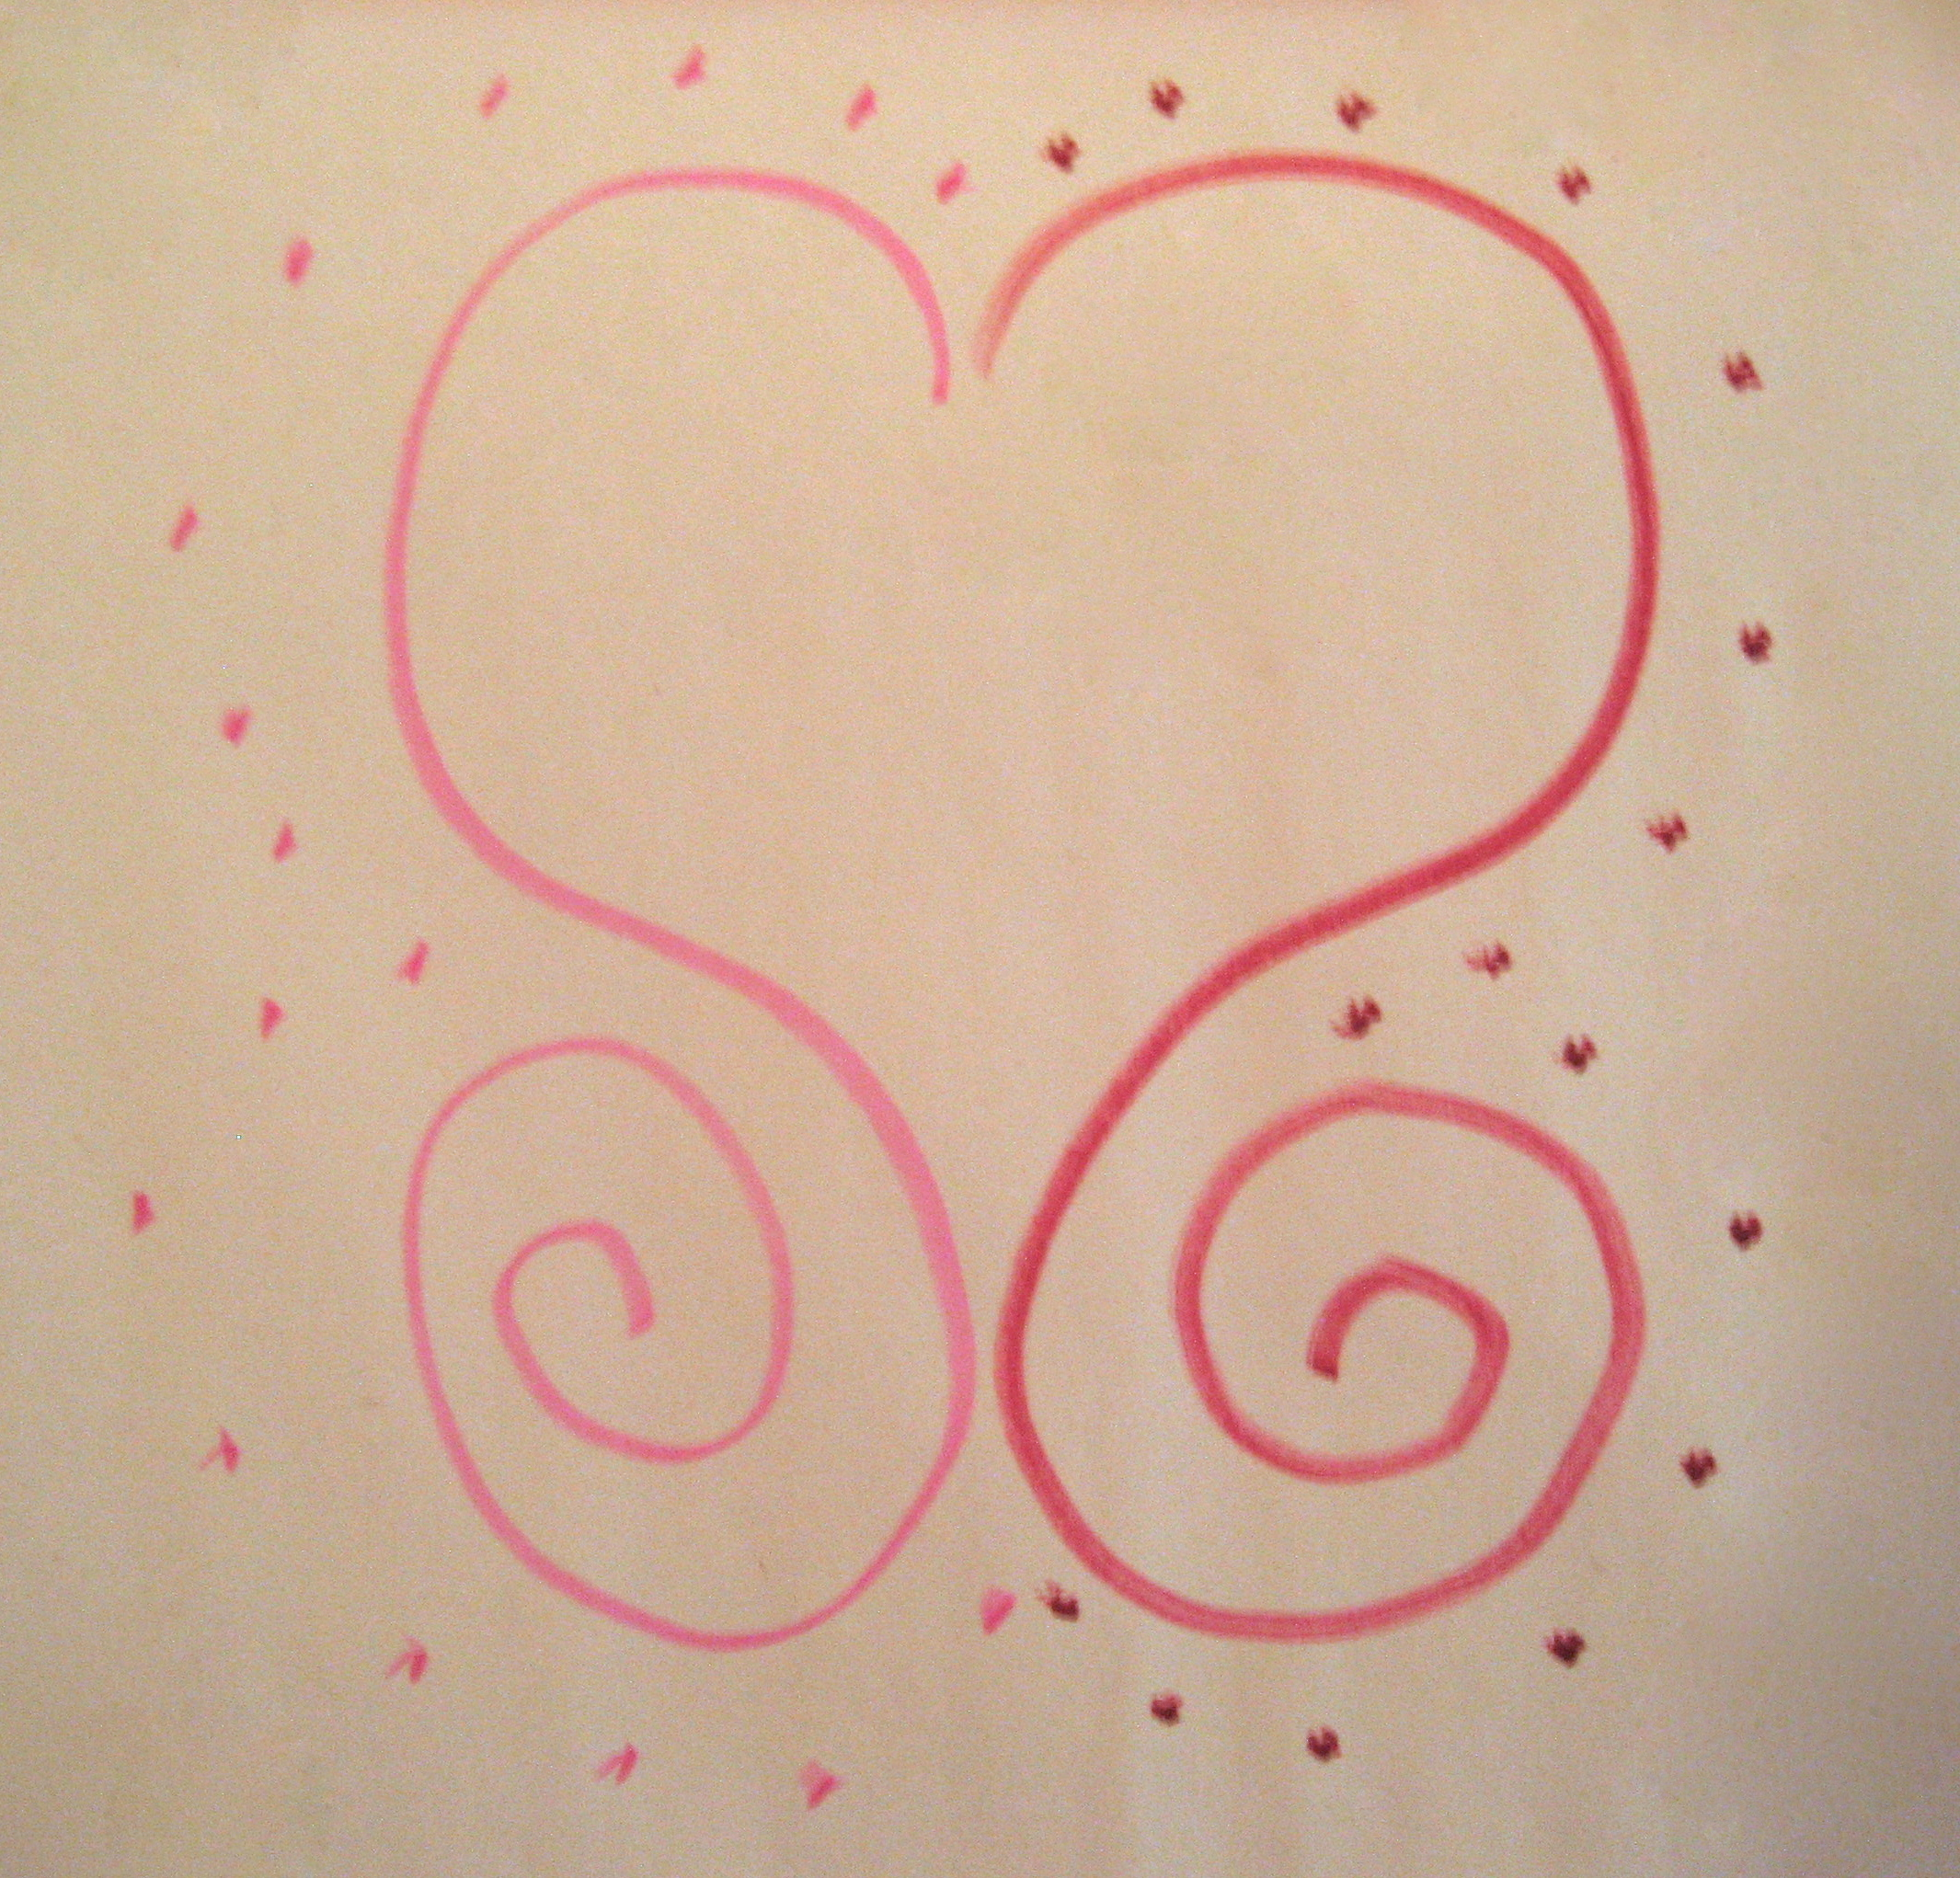 A Soothing Double Doodle Heart For Kids Of All Ages A Short